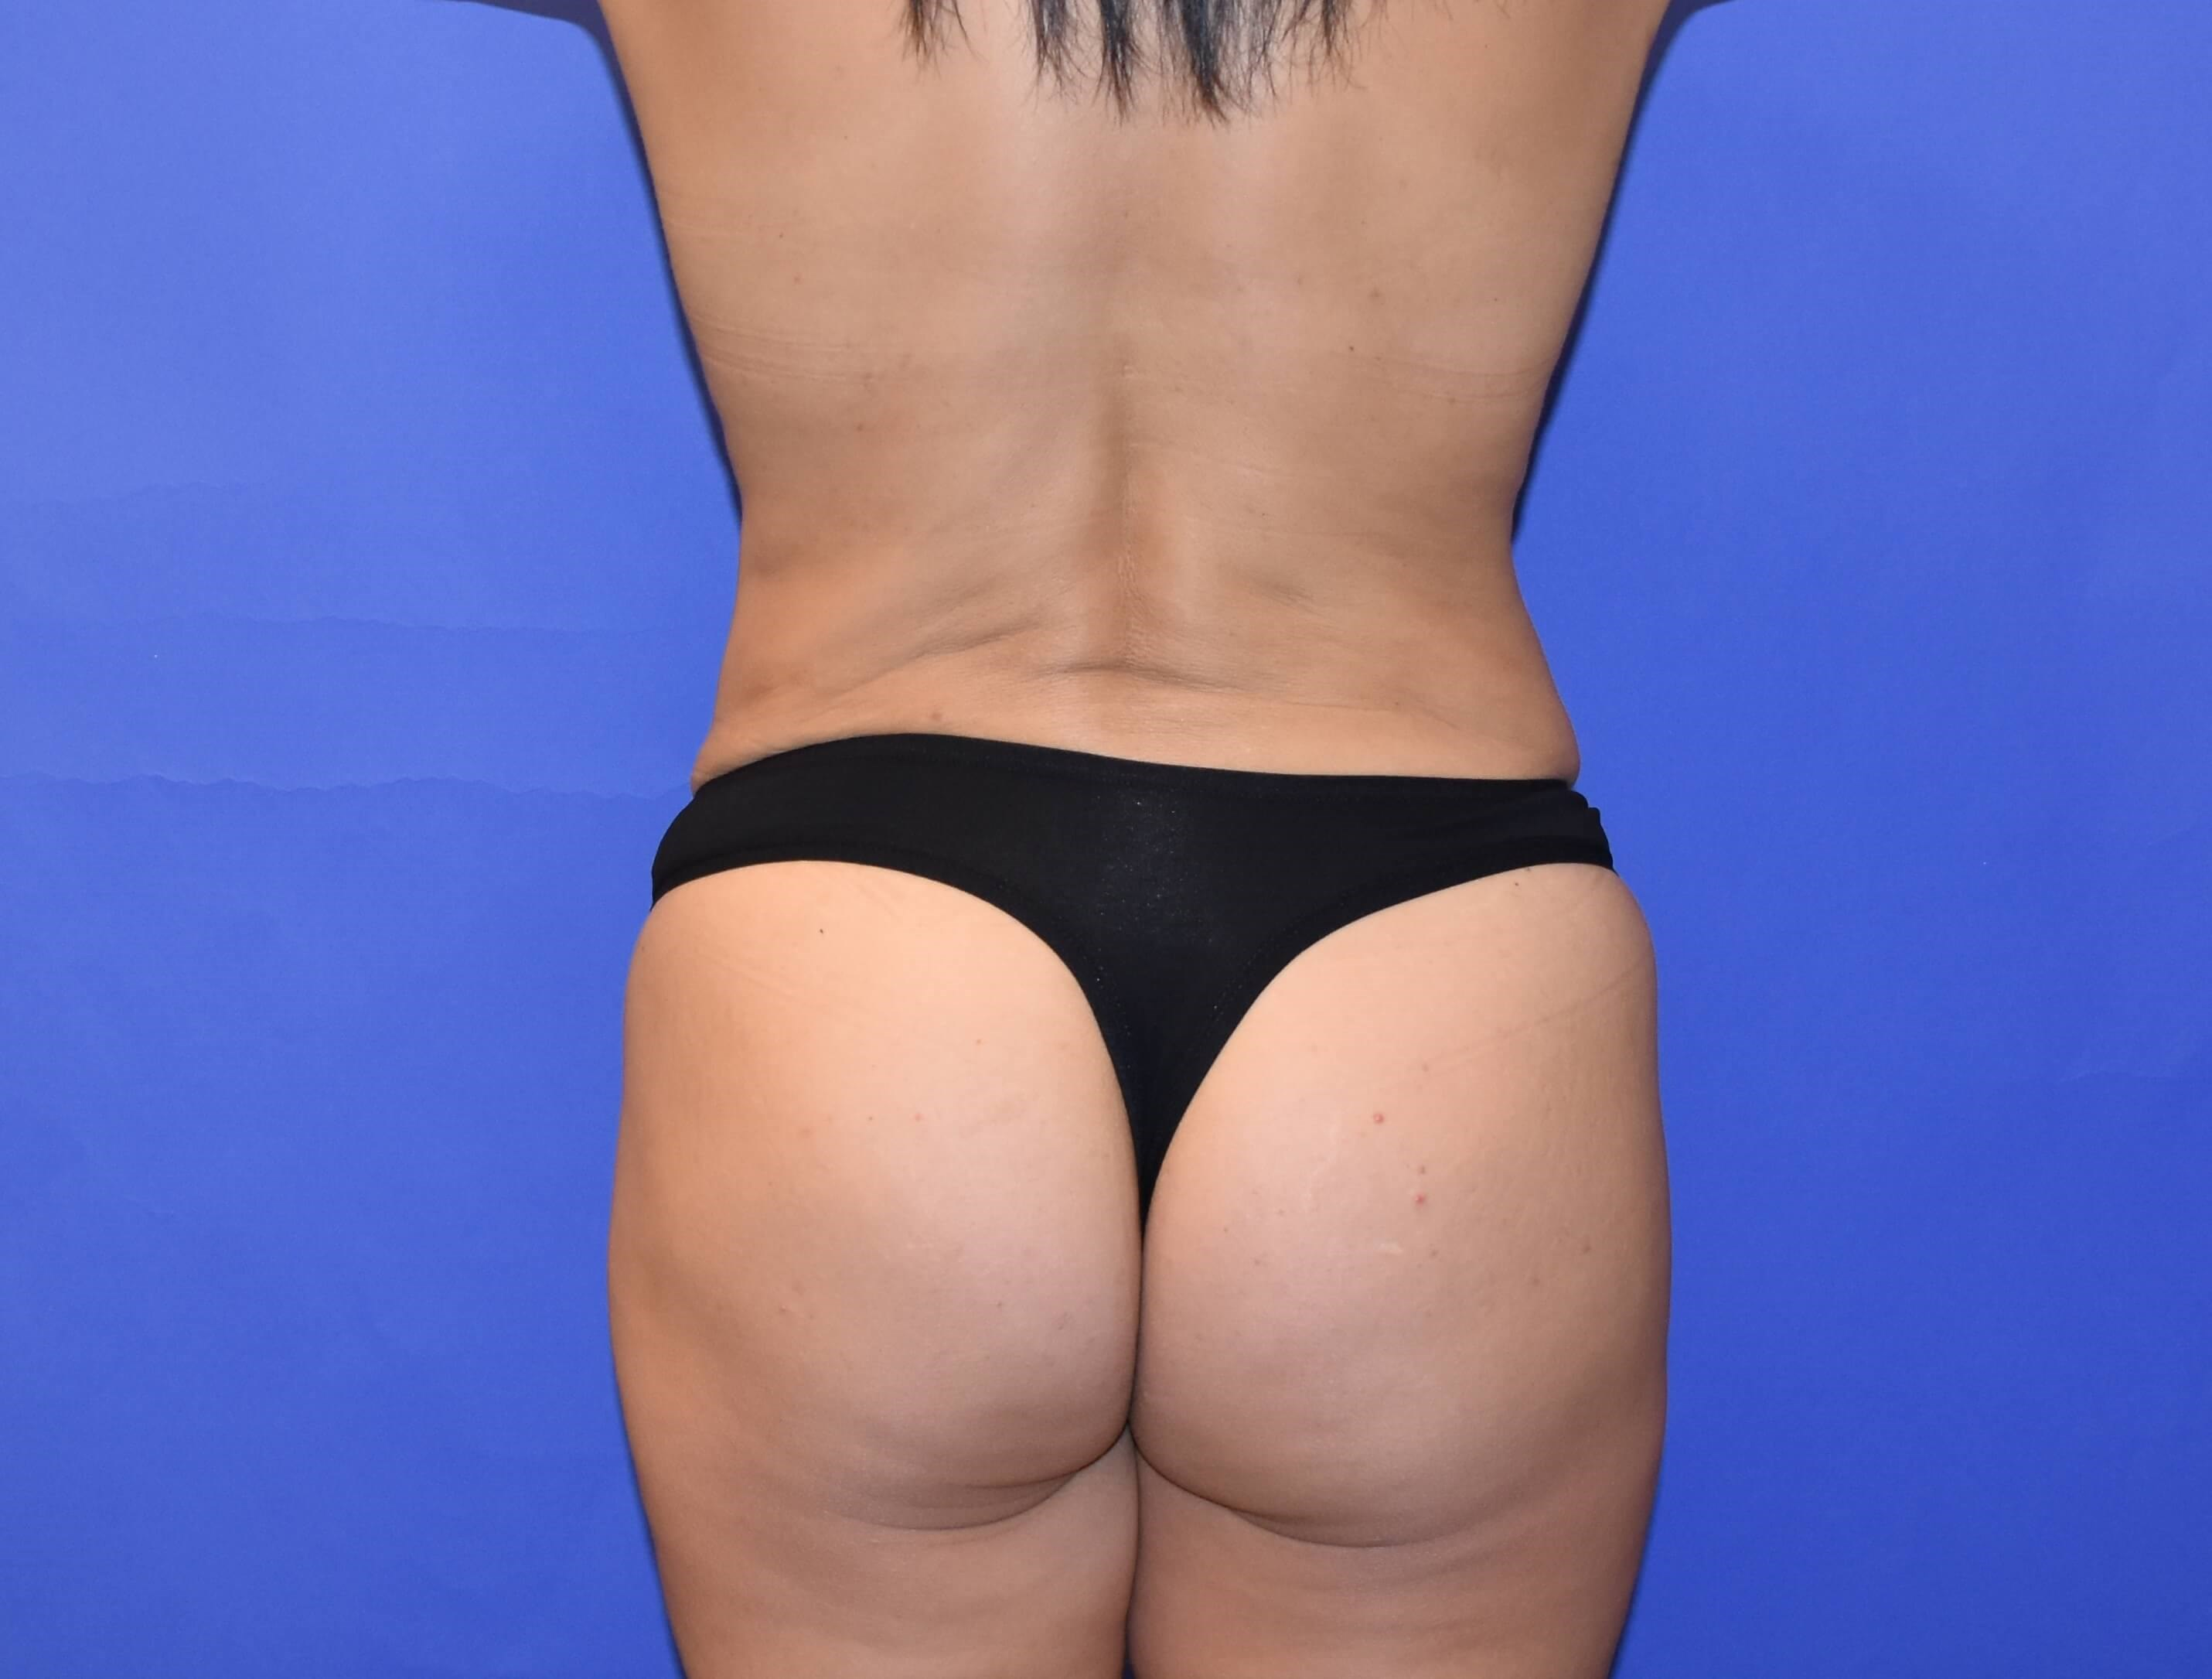 Fat Transfer to Buttocks/Hips After